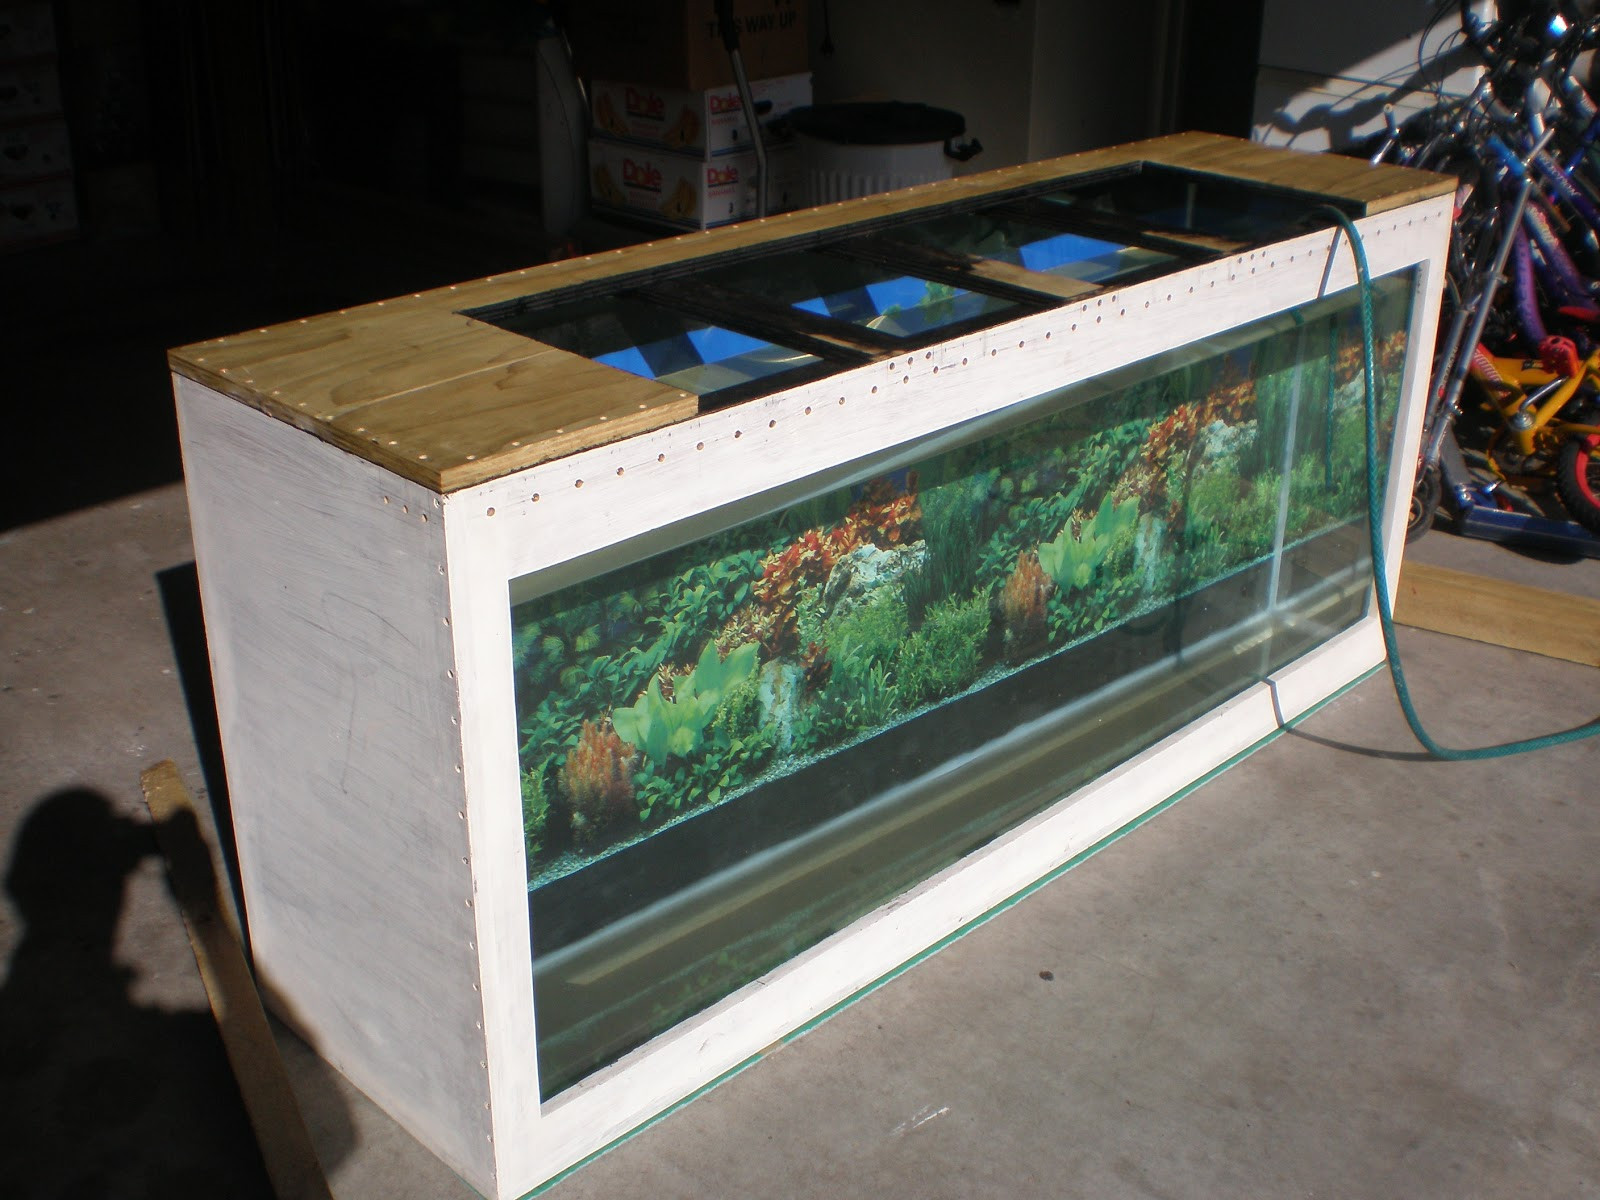 DIY Plywood Aquarium  DIY Plywood Aquarium DIY Plywood Aquarium